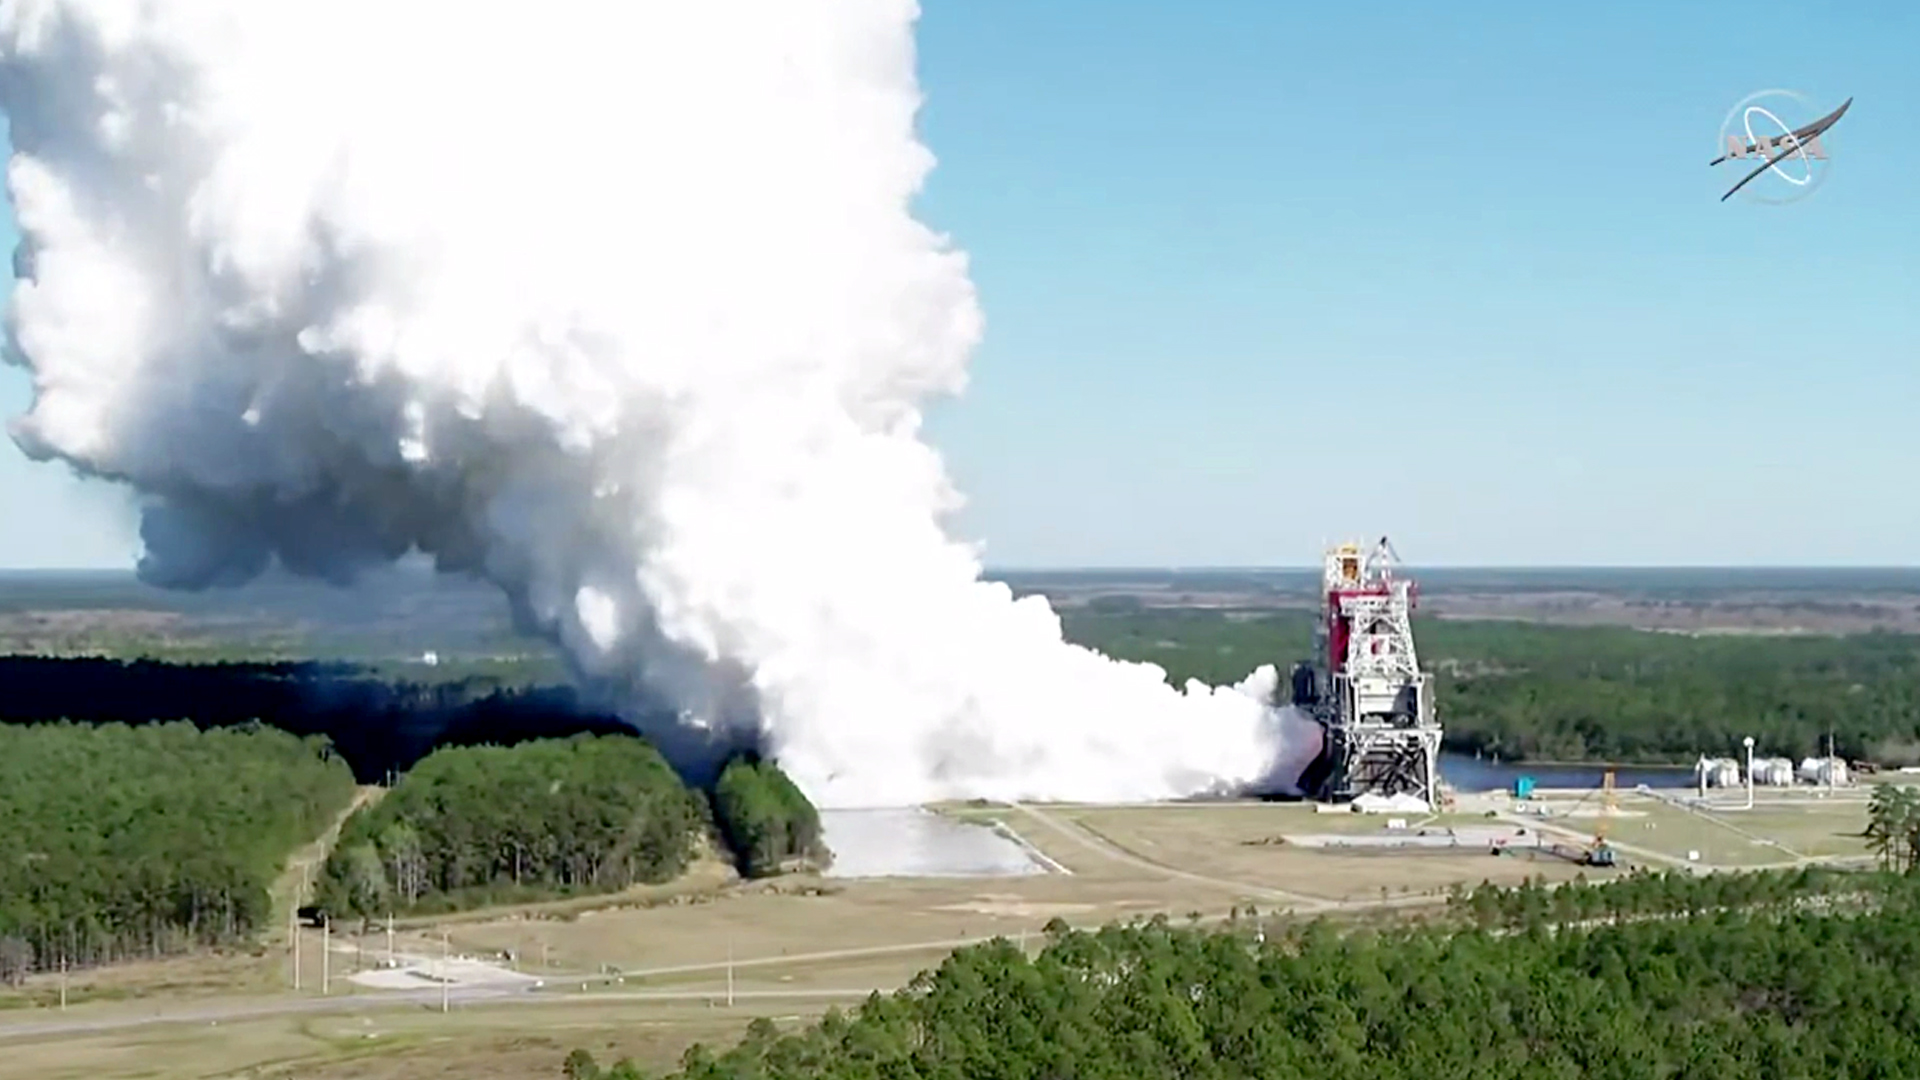 VIDEO: Rocket Blam: NASA Tests World's Most Powerful Rocket For Return To The Moon